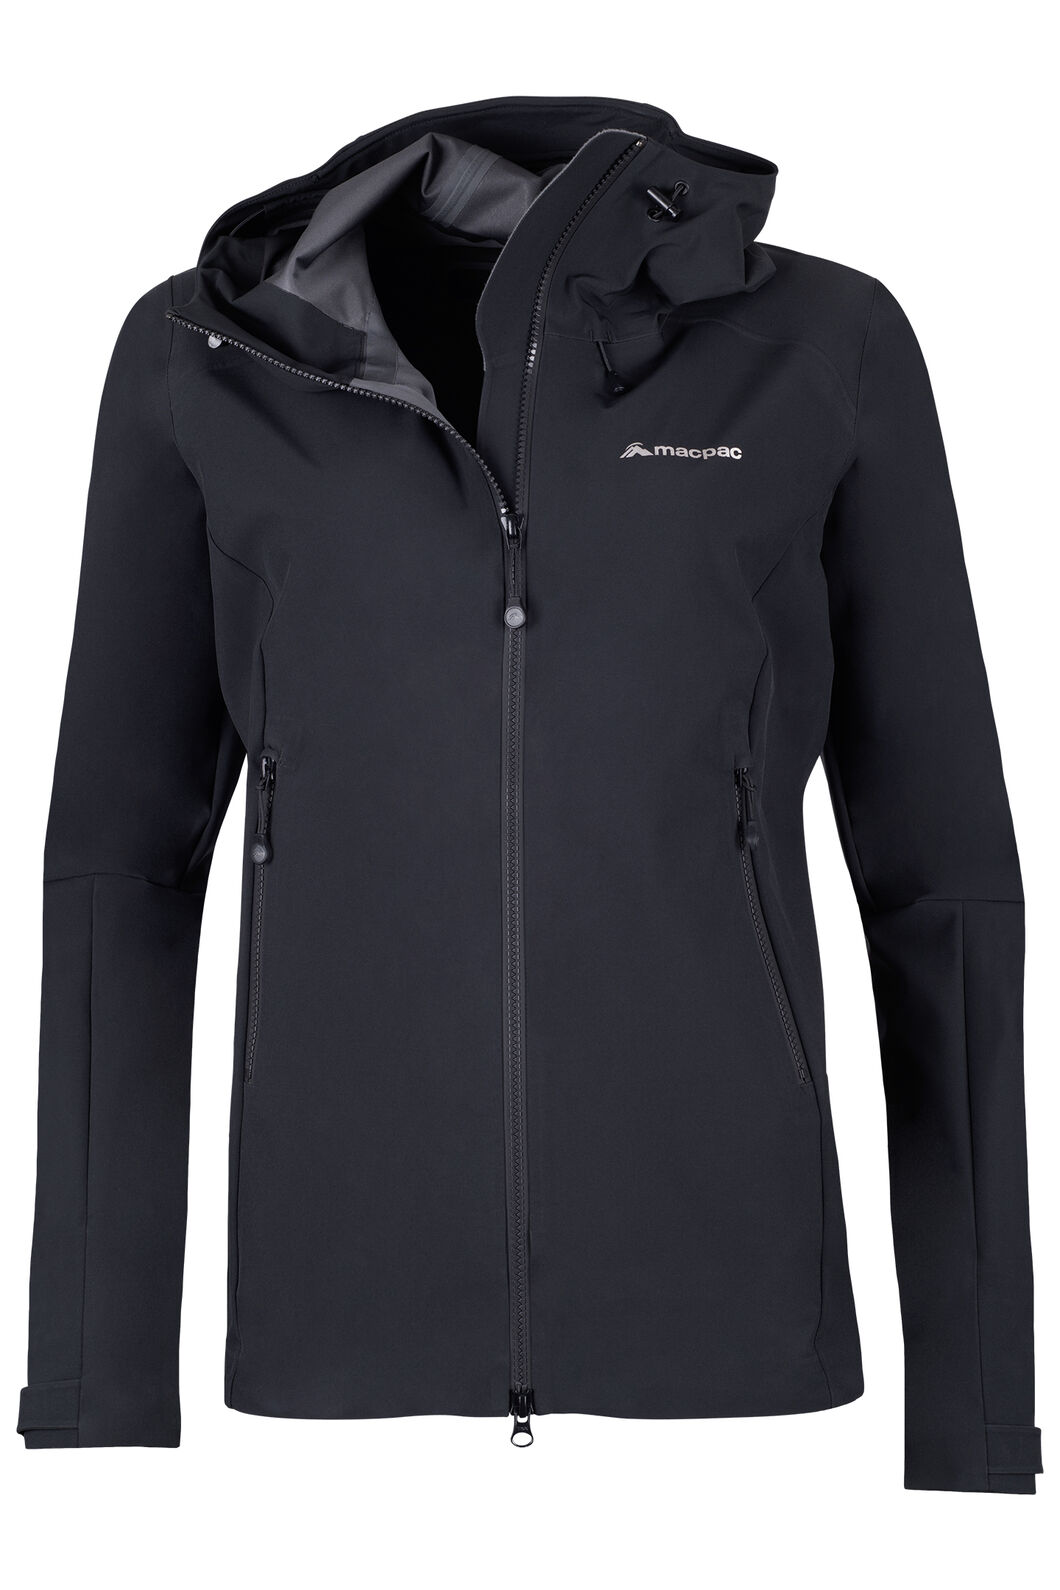 Fitzroy Alpine Series Softshell Jacket - Women's, Black, hi-res